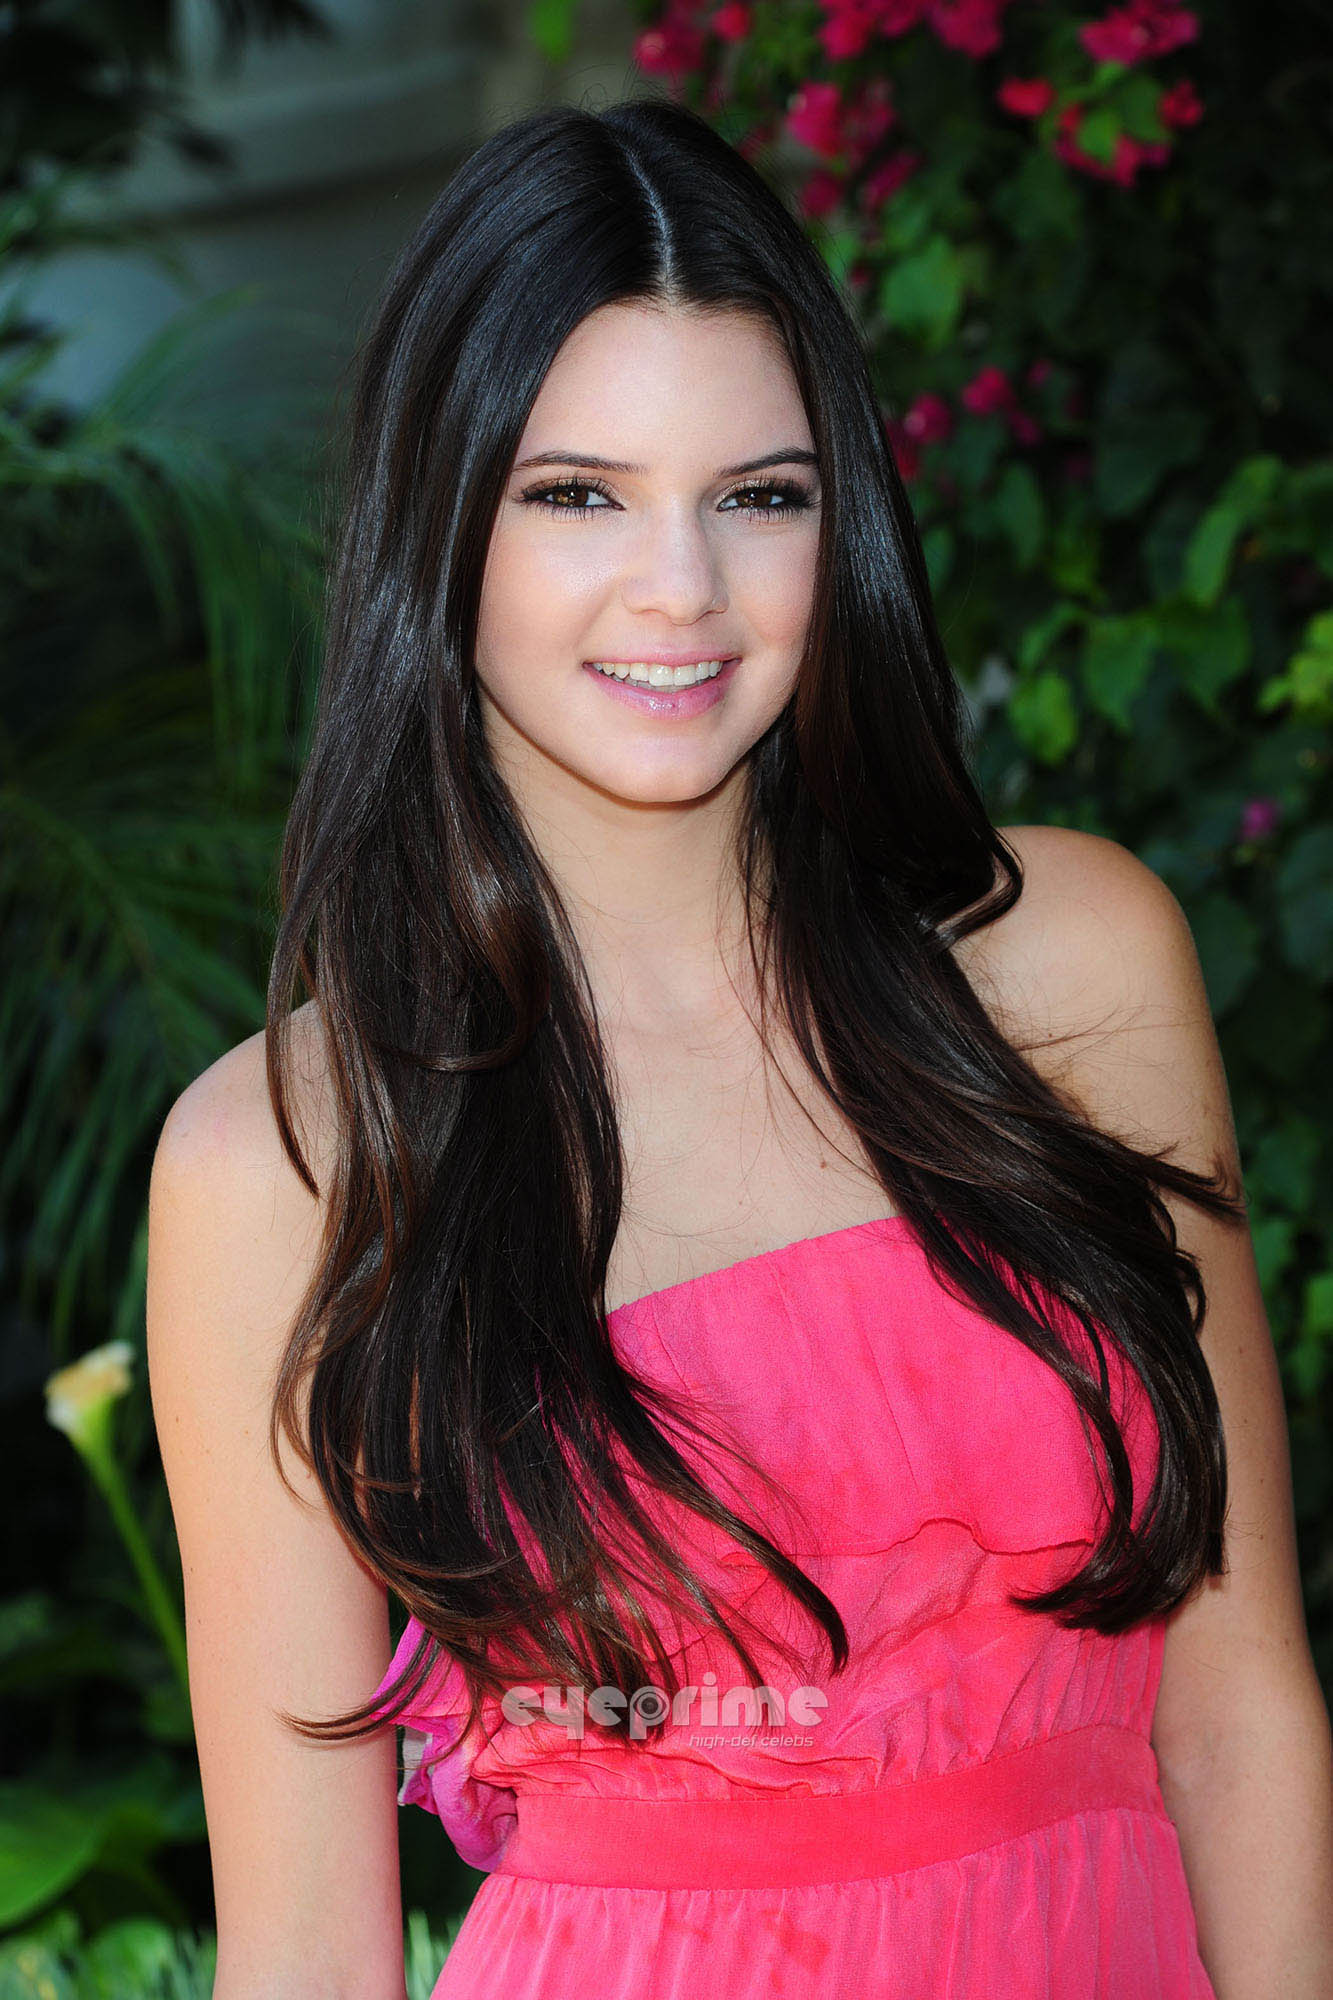 Kendall Jenner Looks Pretty In Pink For A Photoshoot